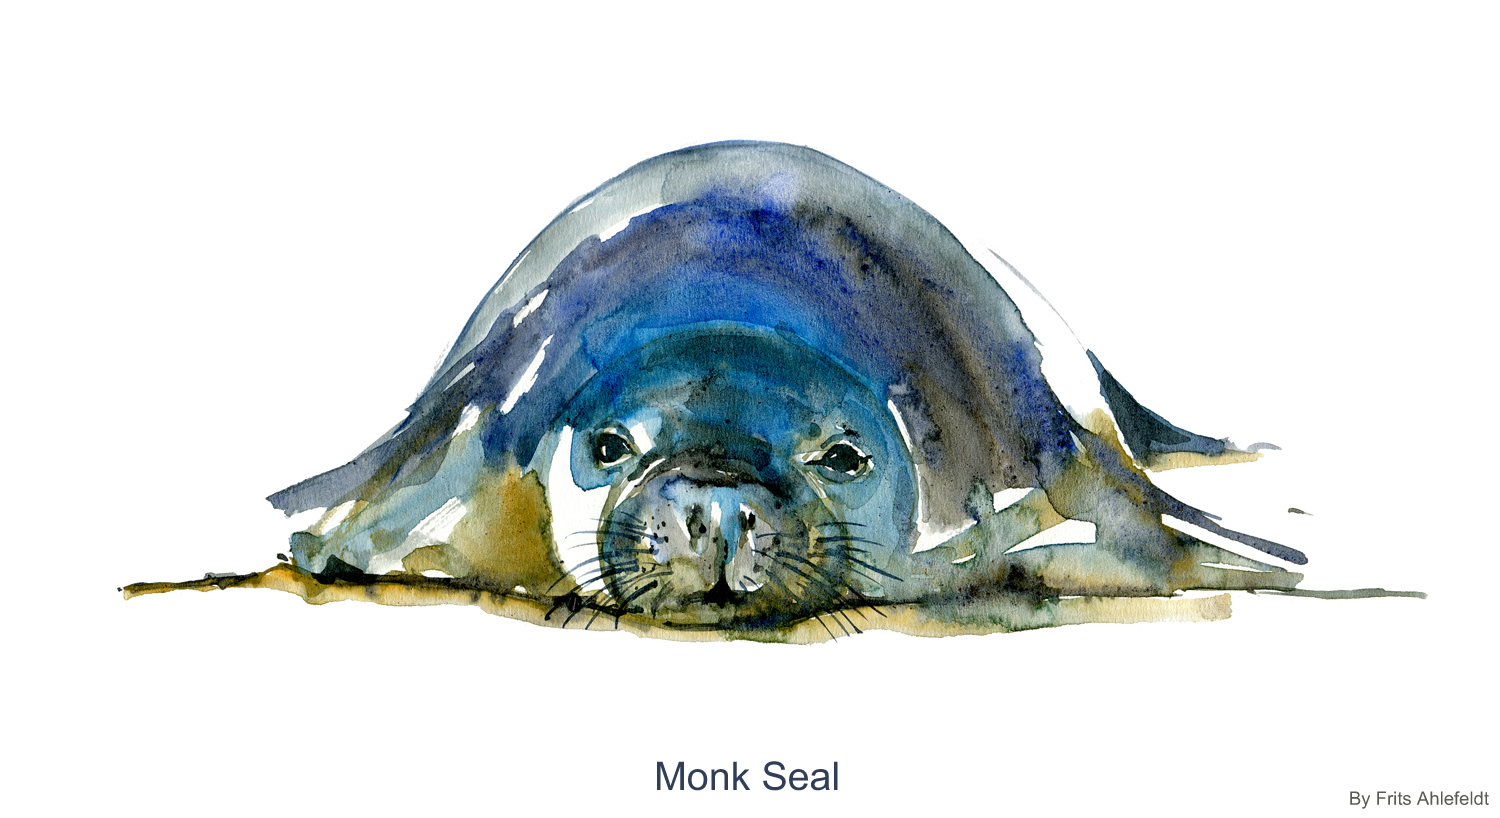 1500x818 Monk Seal Watercolor Note The Hiking Artist Project By Frits